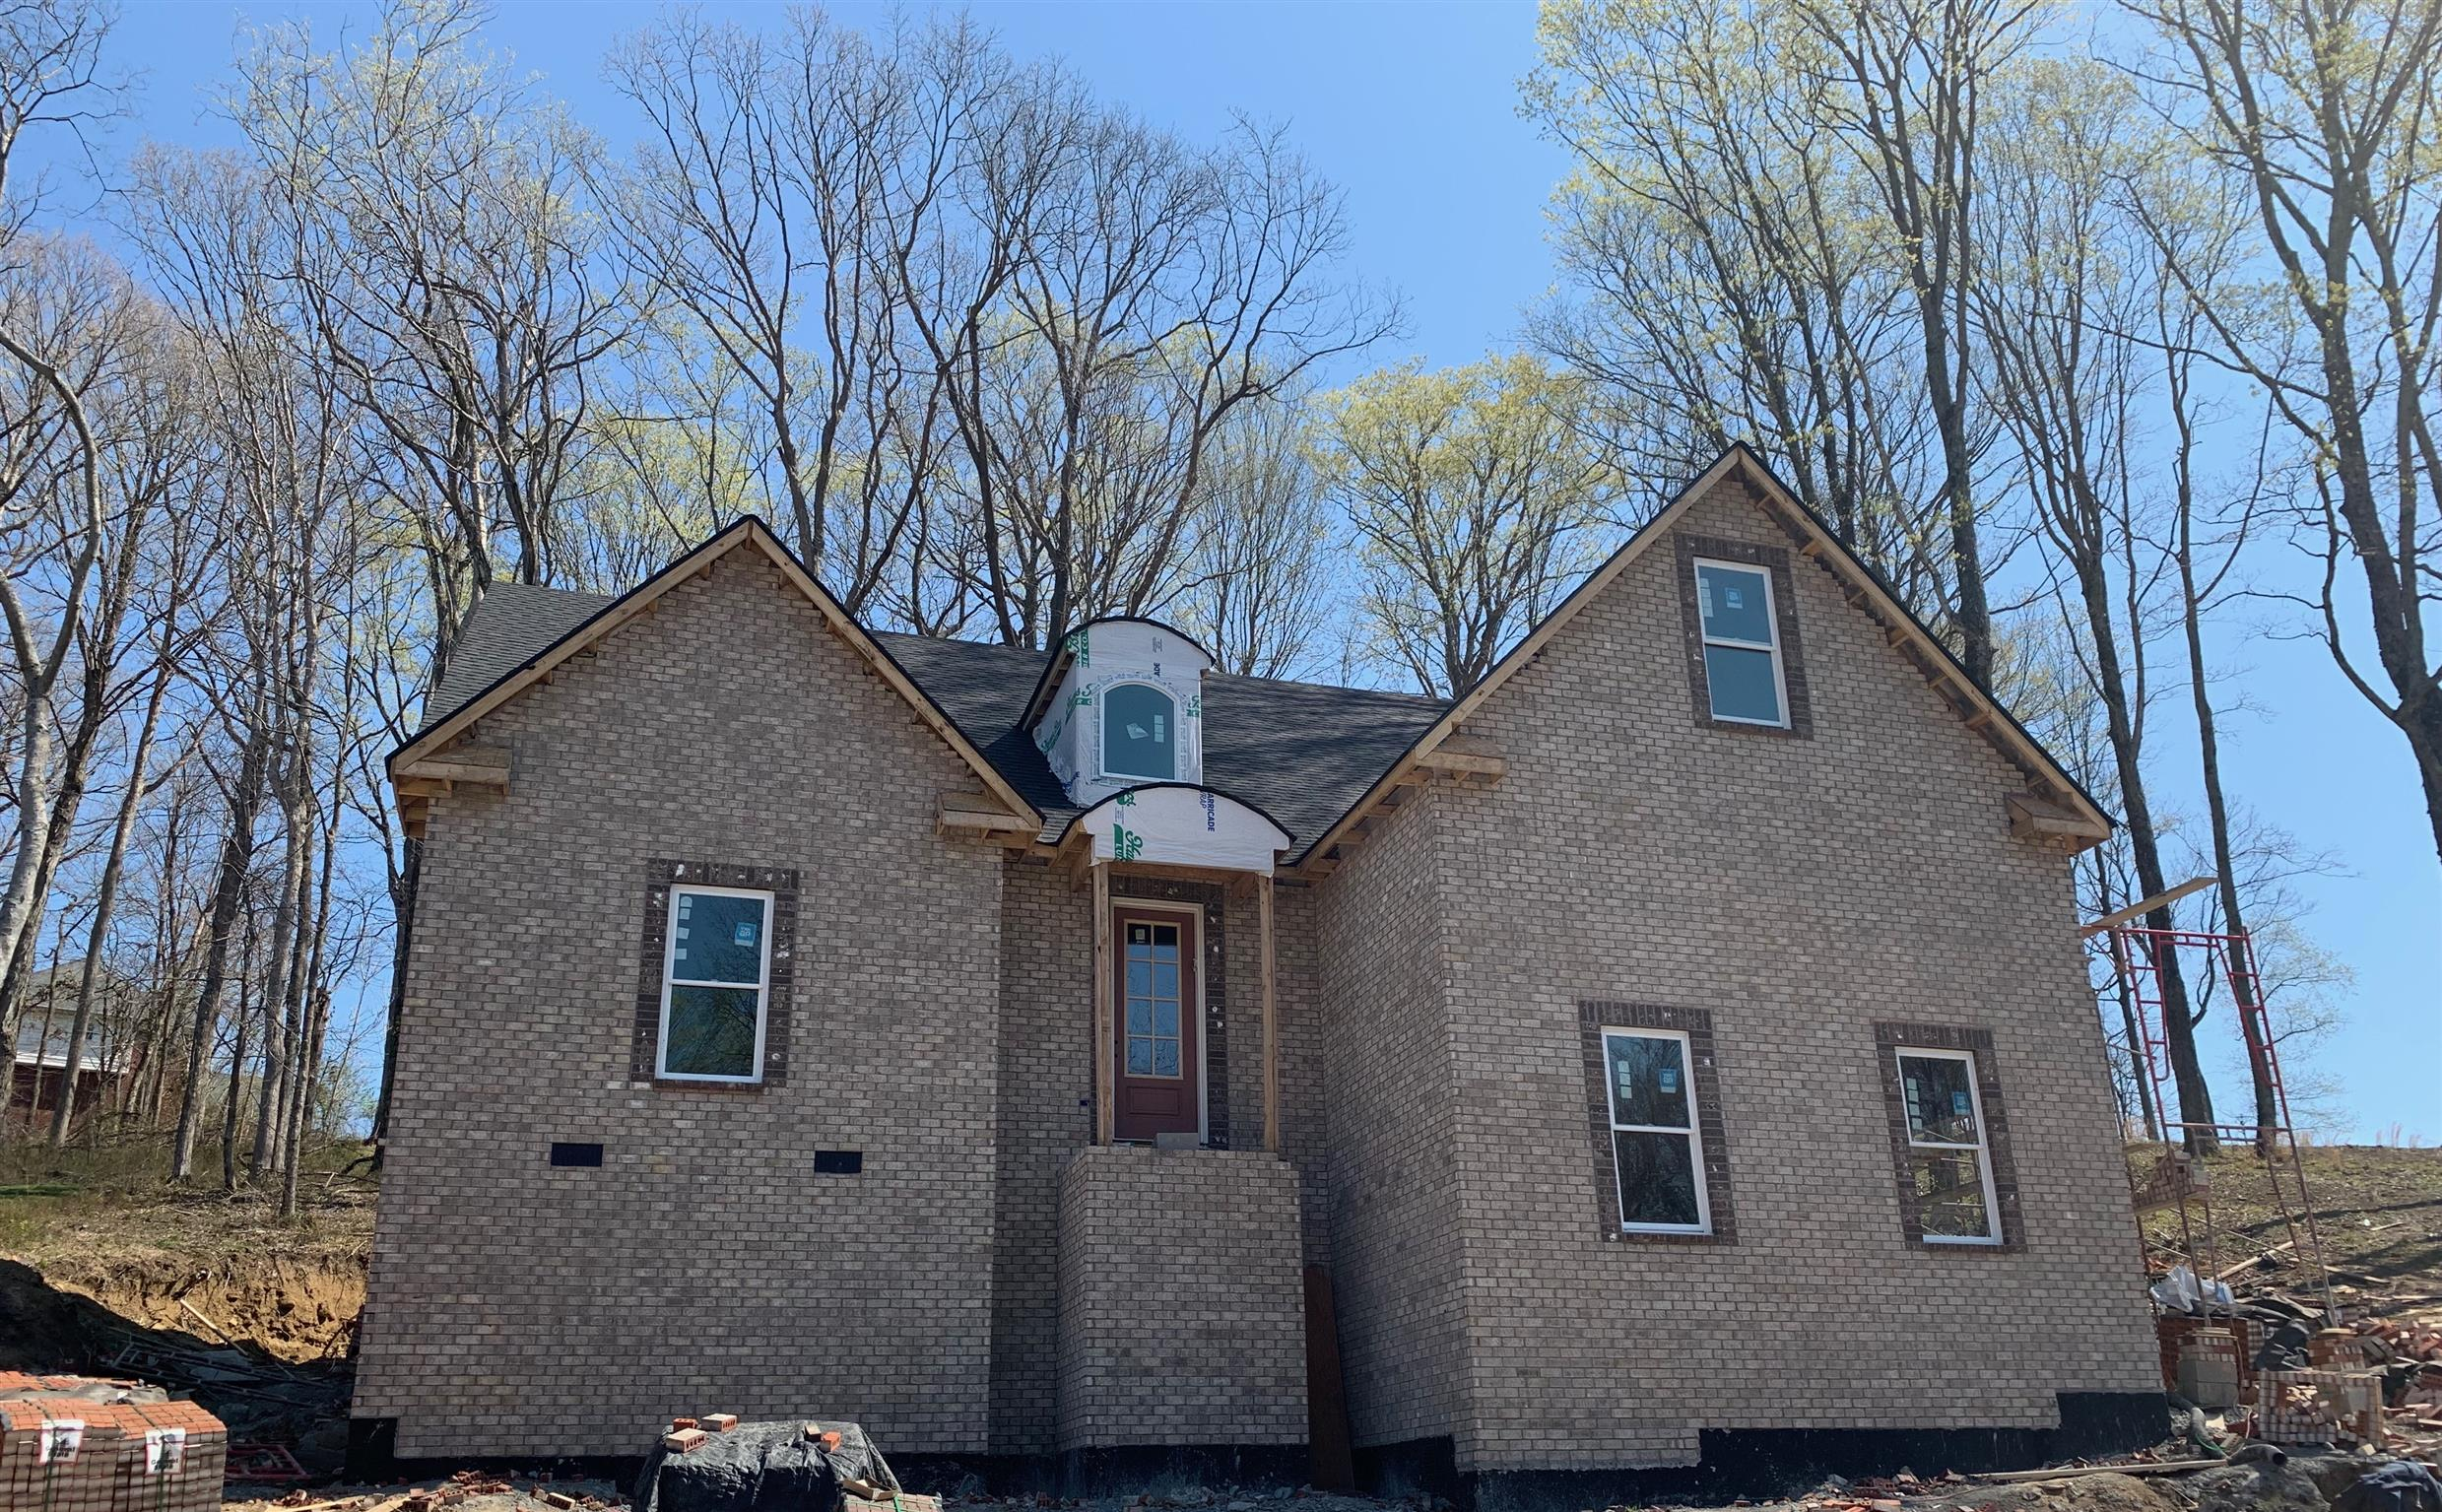 1200 Ben Hill Blvd, Nolensville in Rutherford County County, TN 37135 Home for Sale